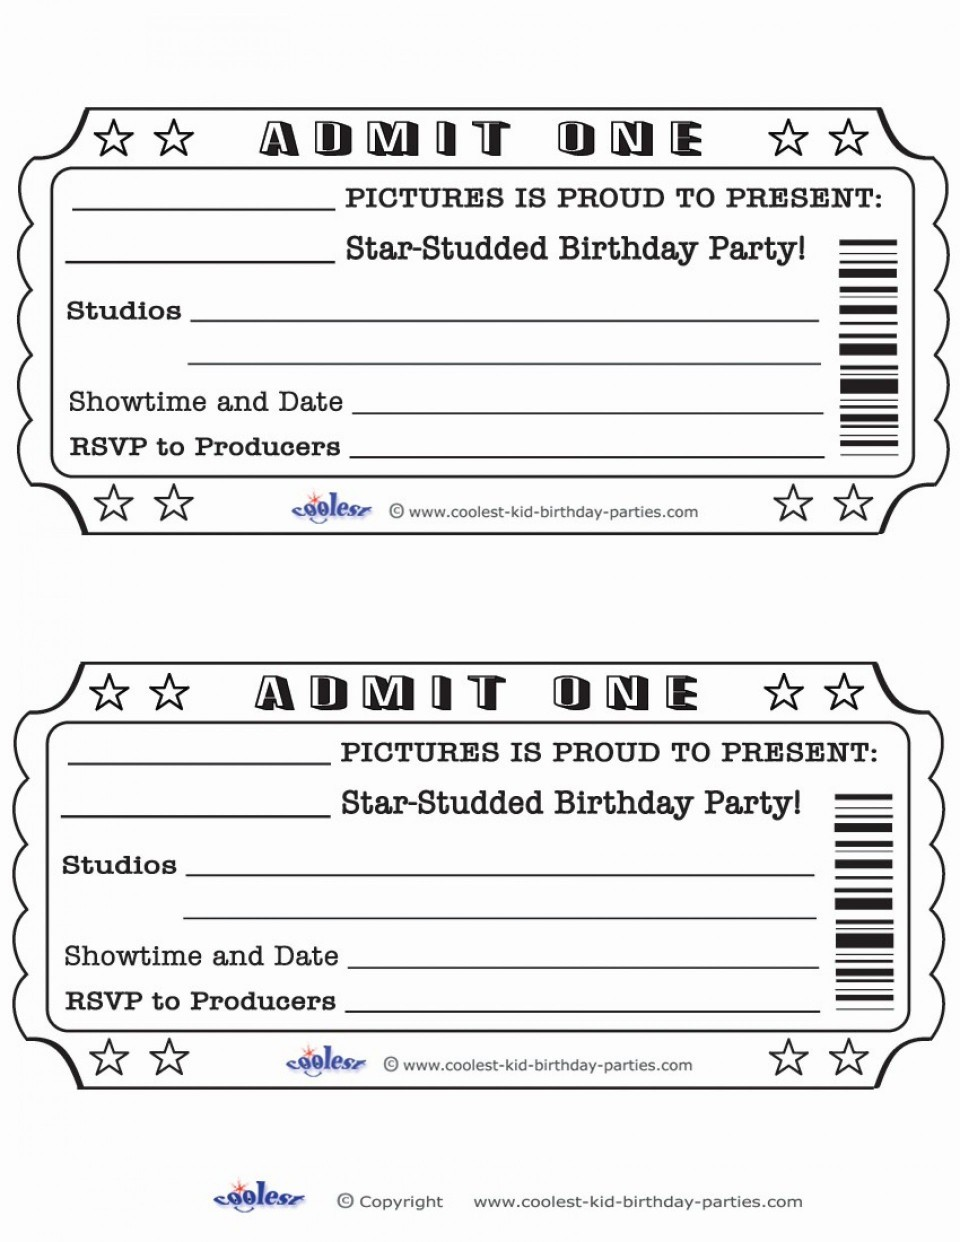 009 Remarkable Free Printable Ticket Template Example  Editable Airline Christma For Gift960